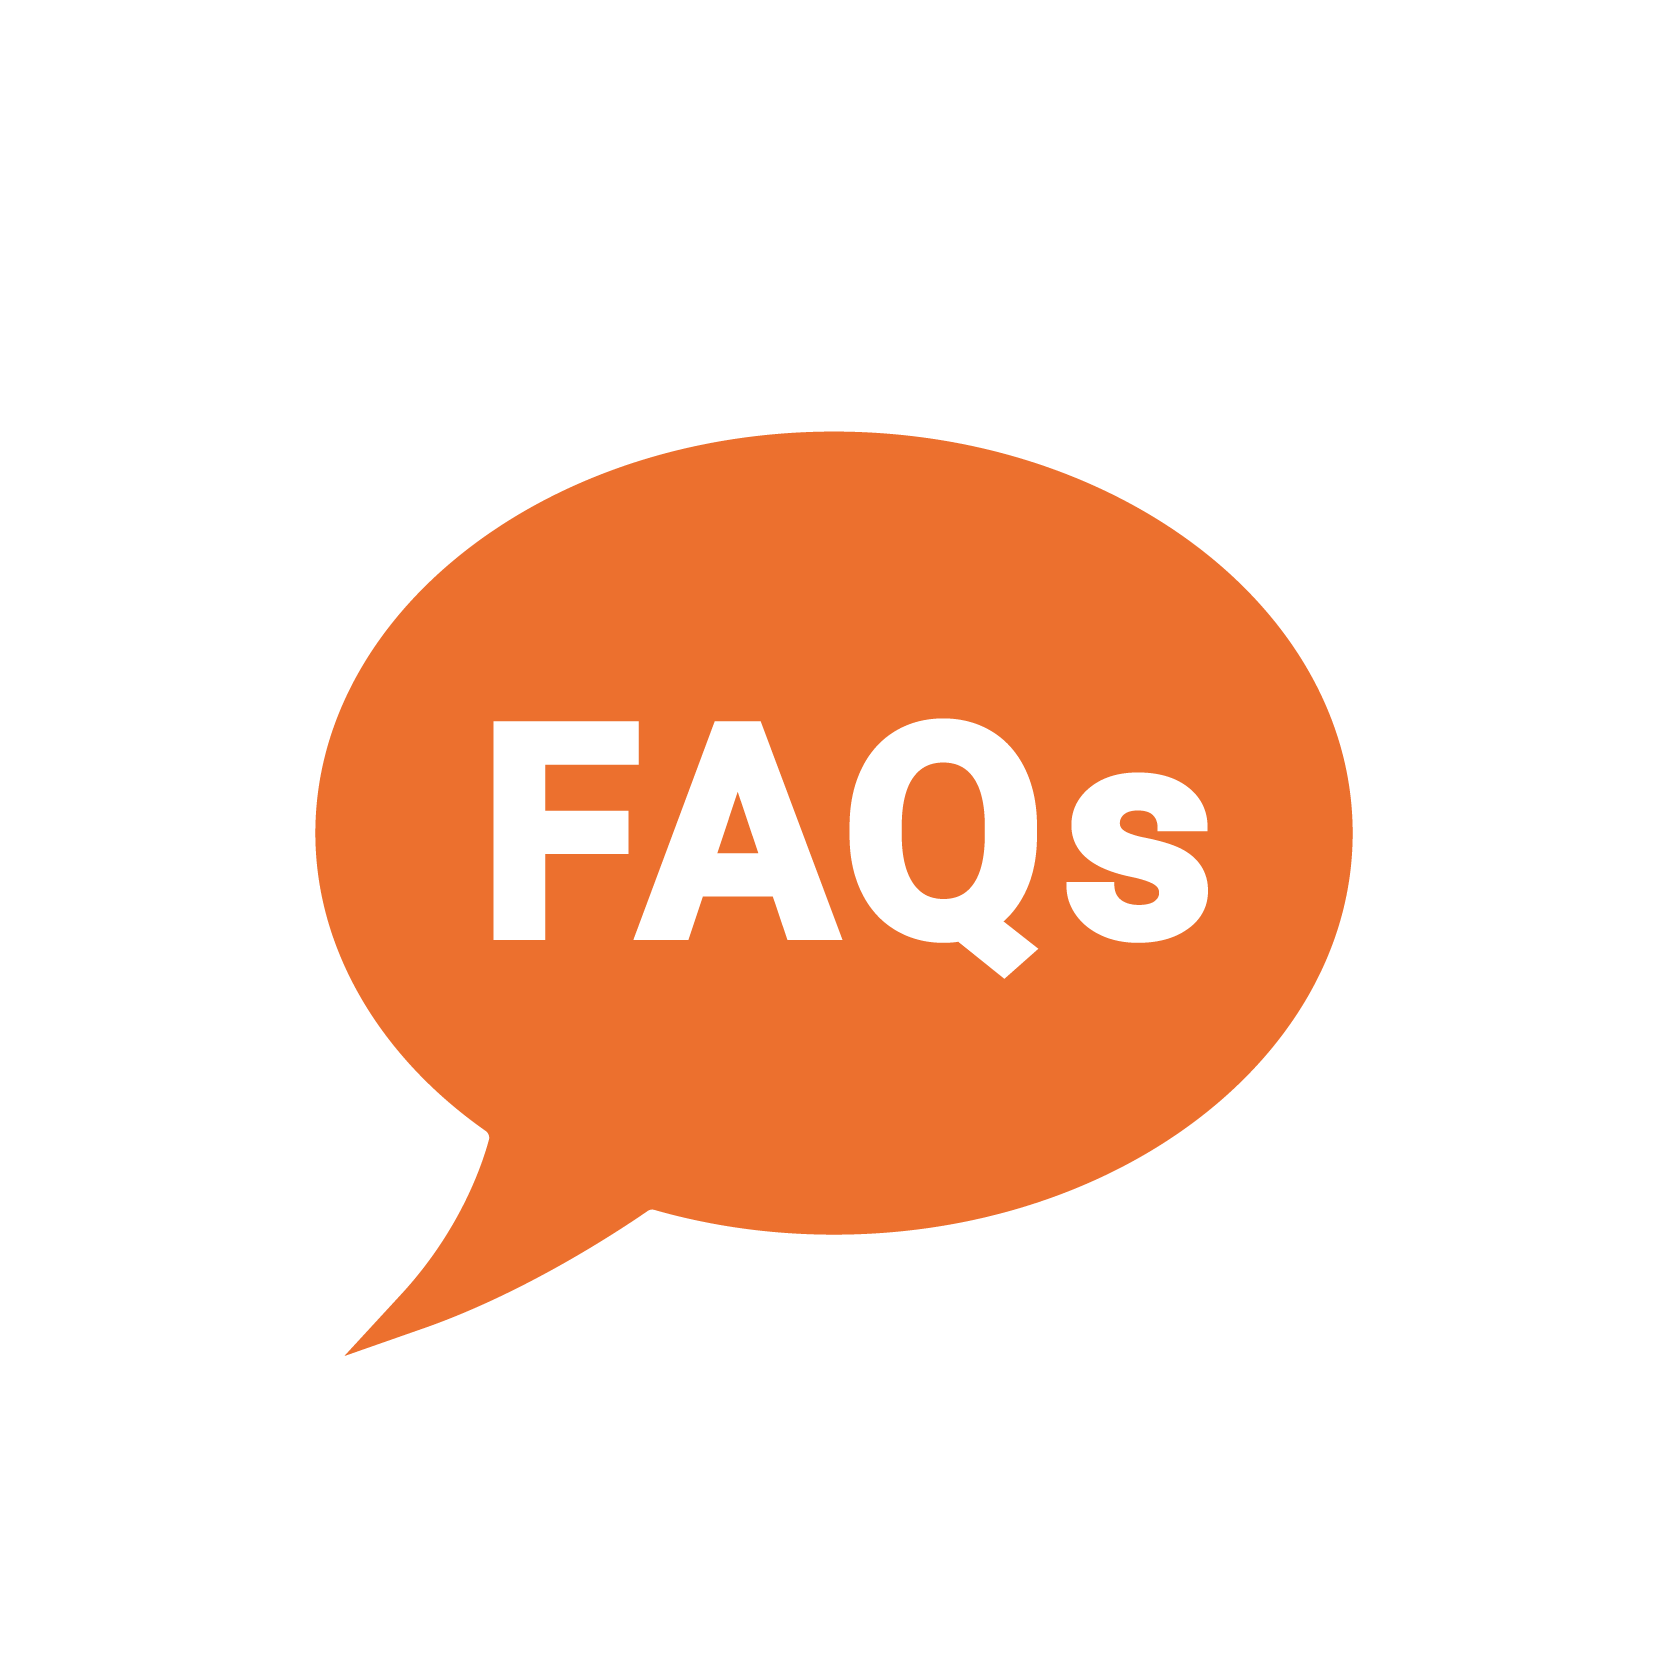 faq-info-orange.png